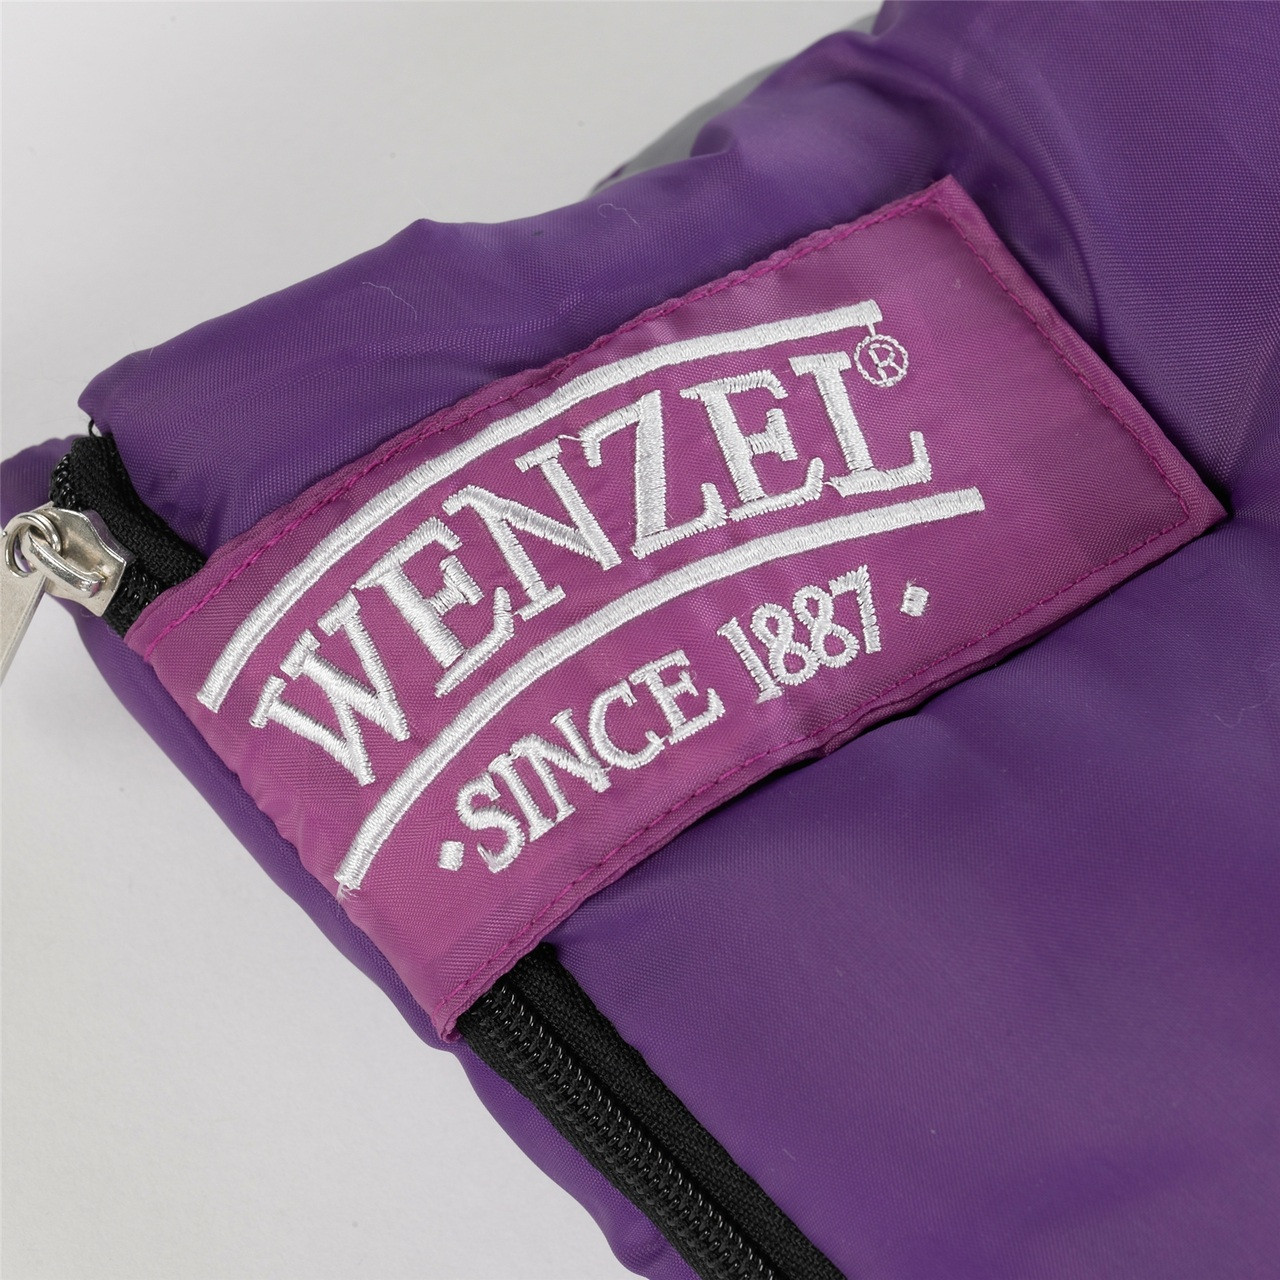 Close up view of the Velcro latch over the zipper on the Wenzel Kids Summer Camp 40 degree sleeping bag, purple